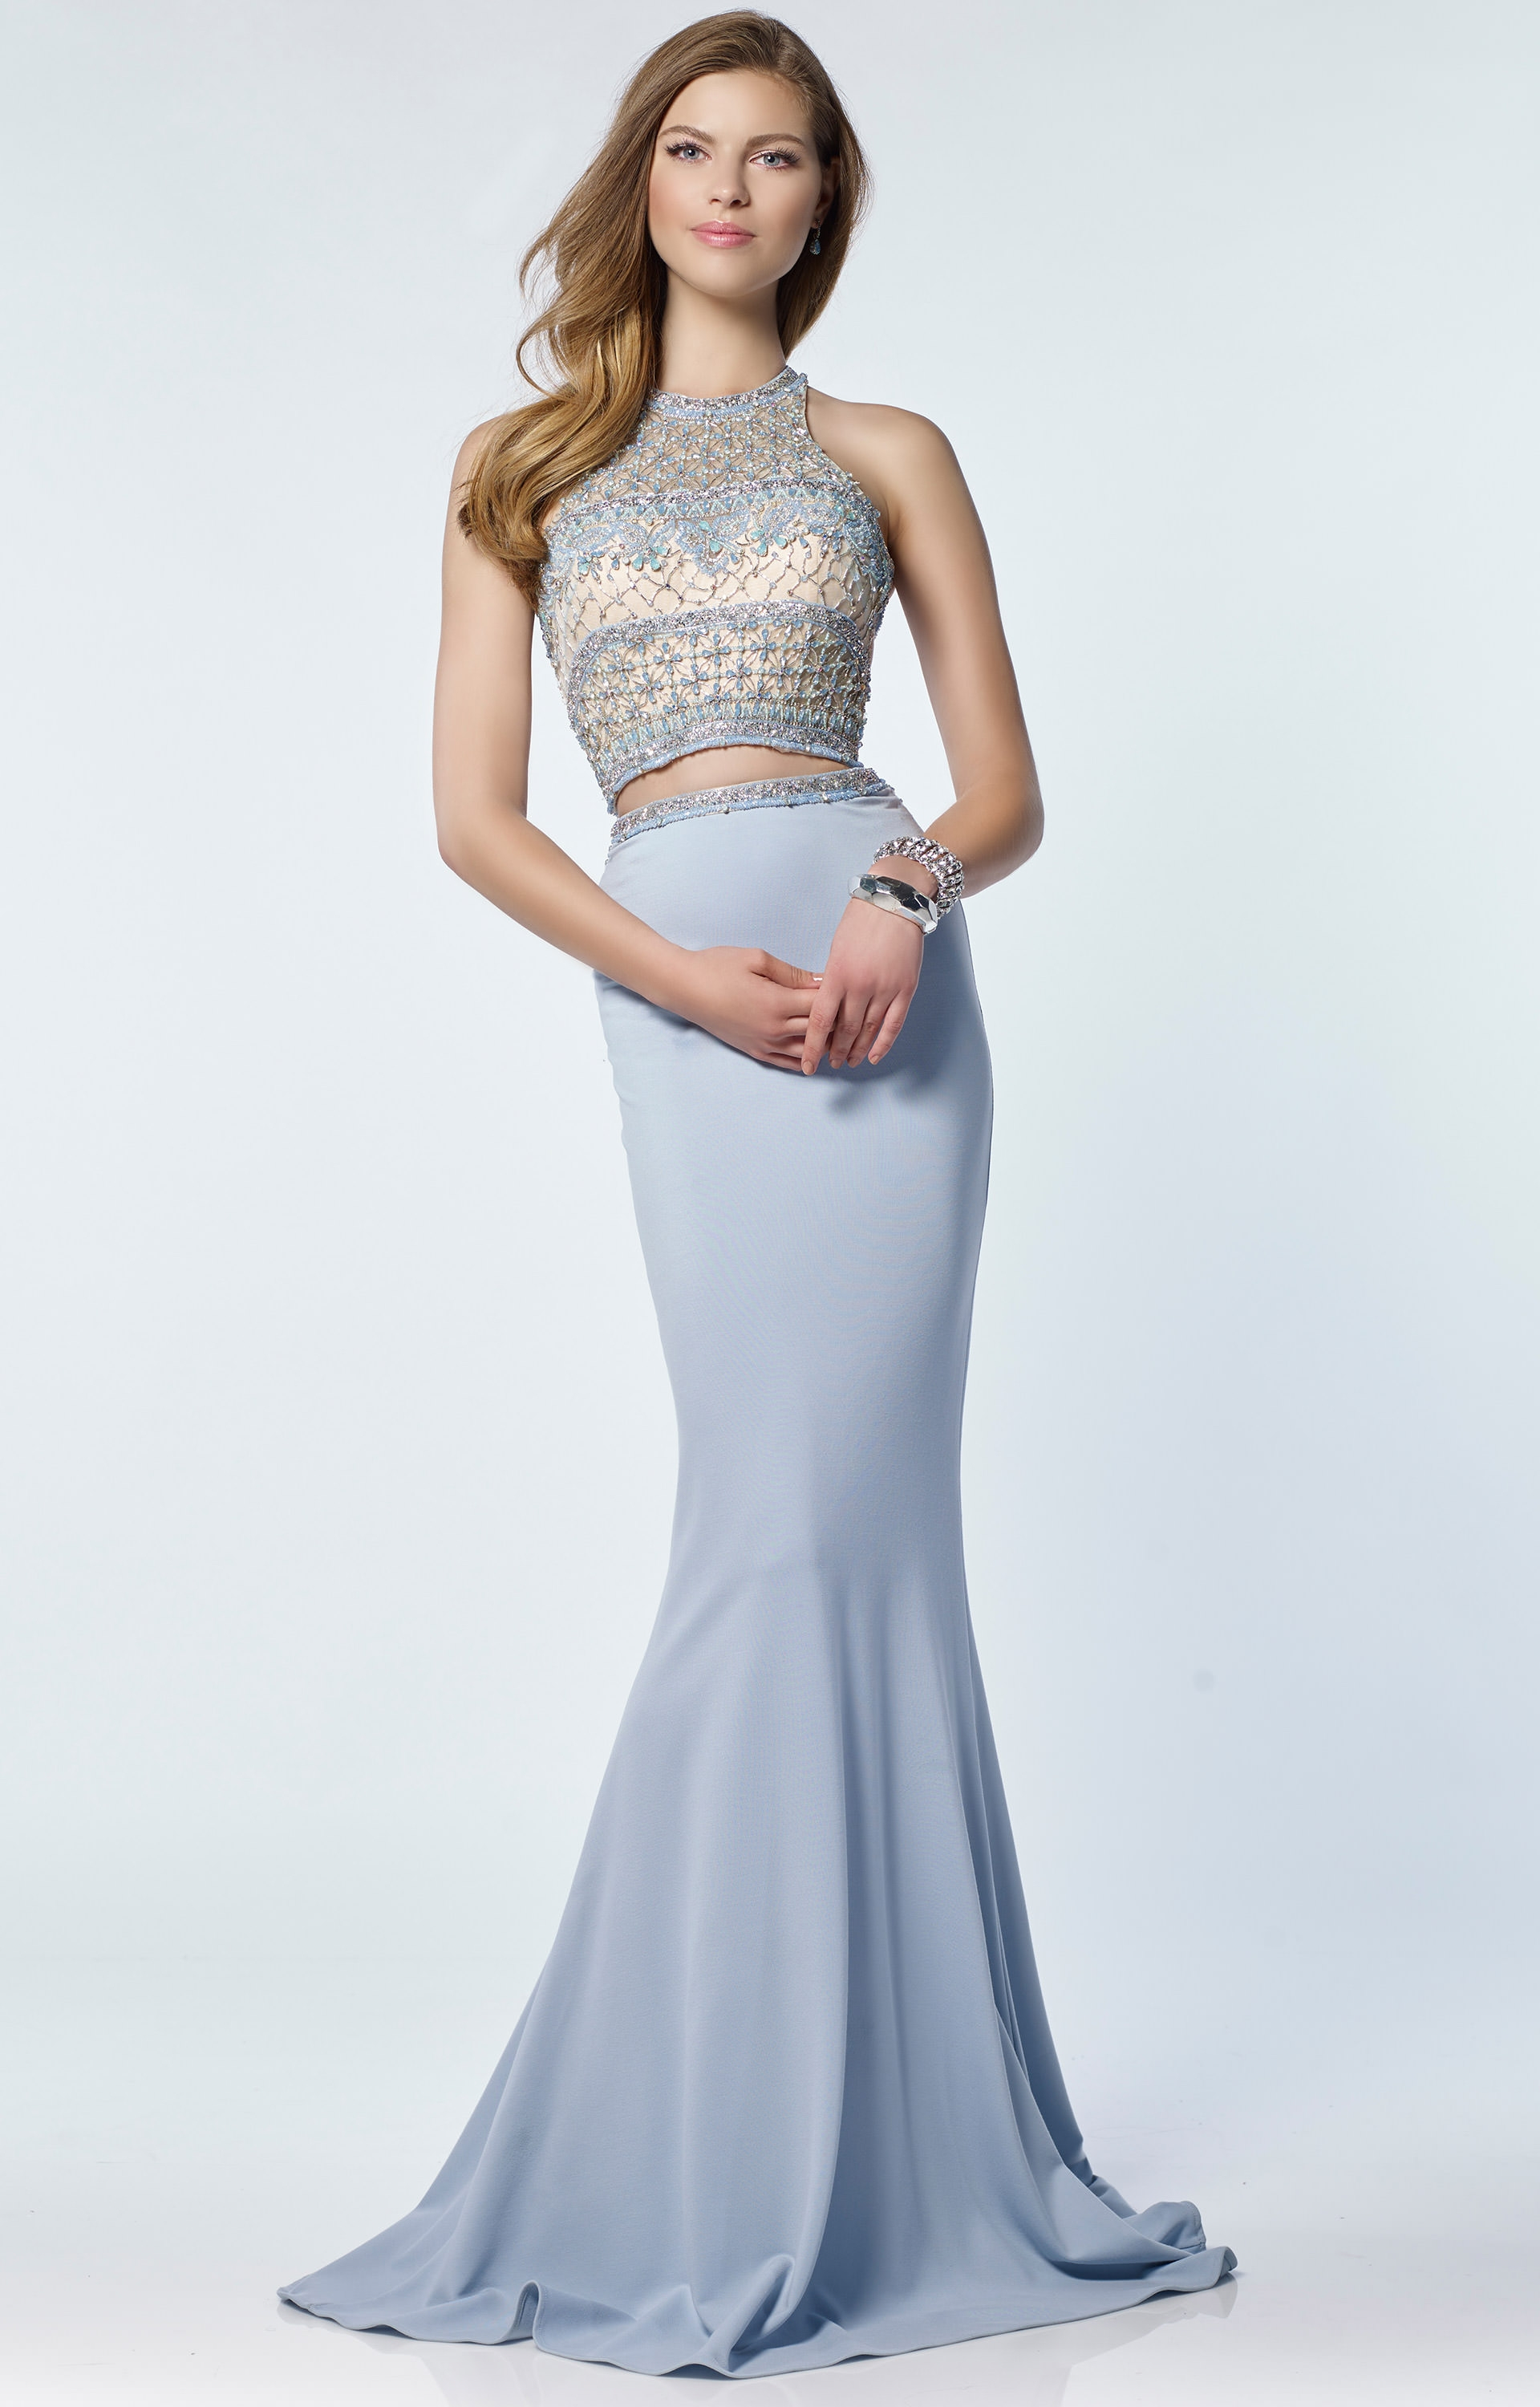 89f9ec36065 Alyce Paris 6712 - Halter Neckline Open Back Fitted 2 Piece Dress Prom Dress